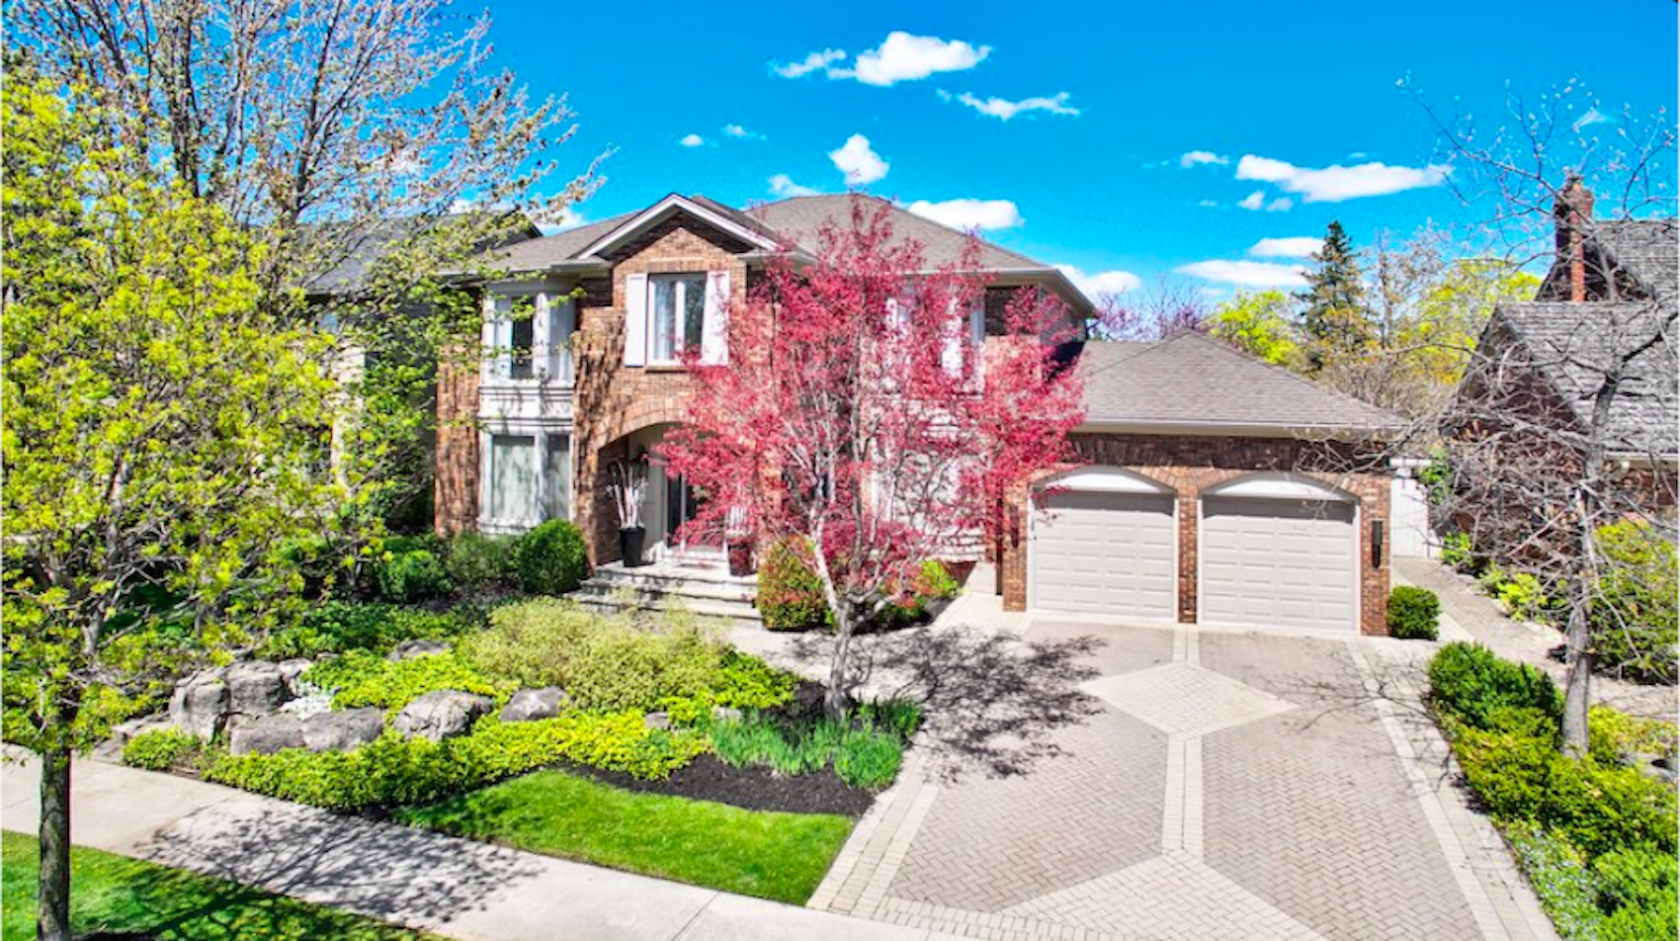 Oakville Real Estate Listings: Dream Home | Team Logue Real Estate